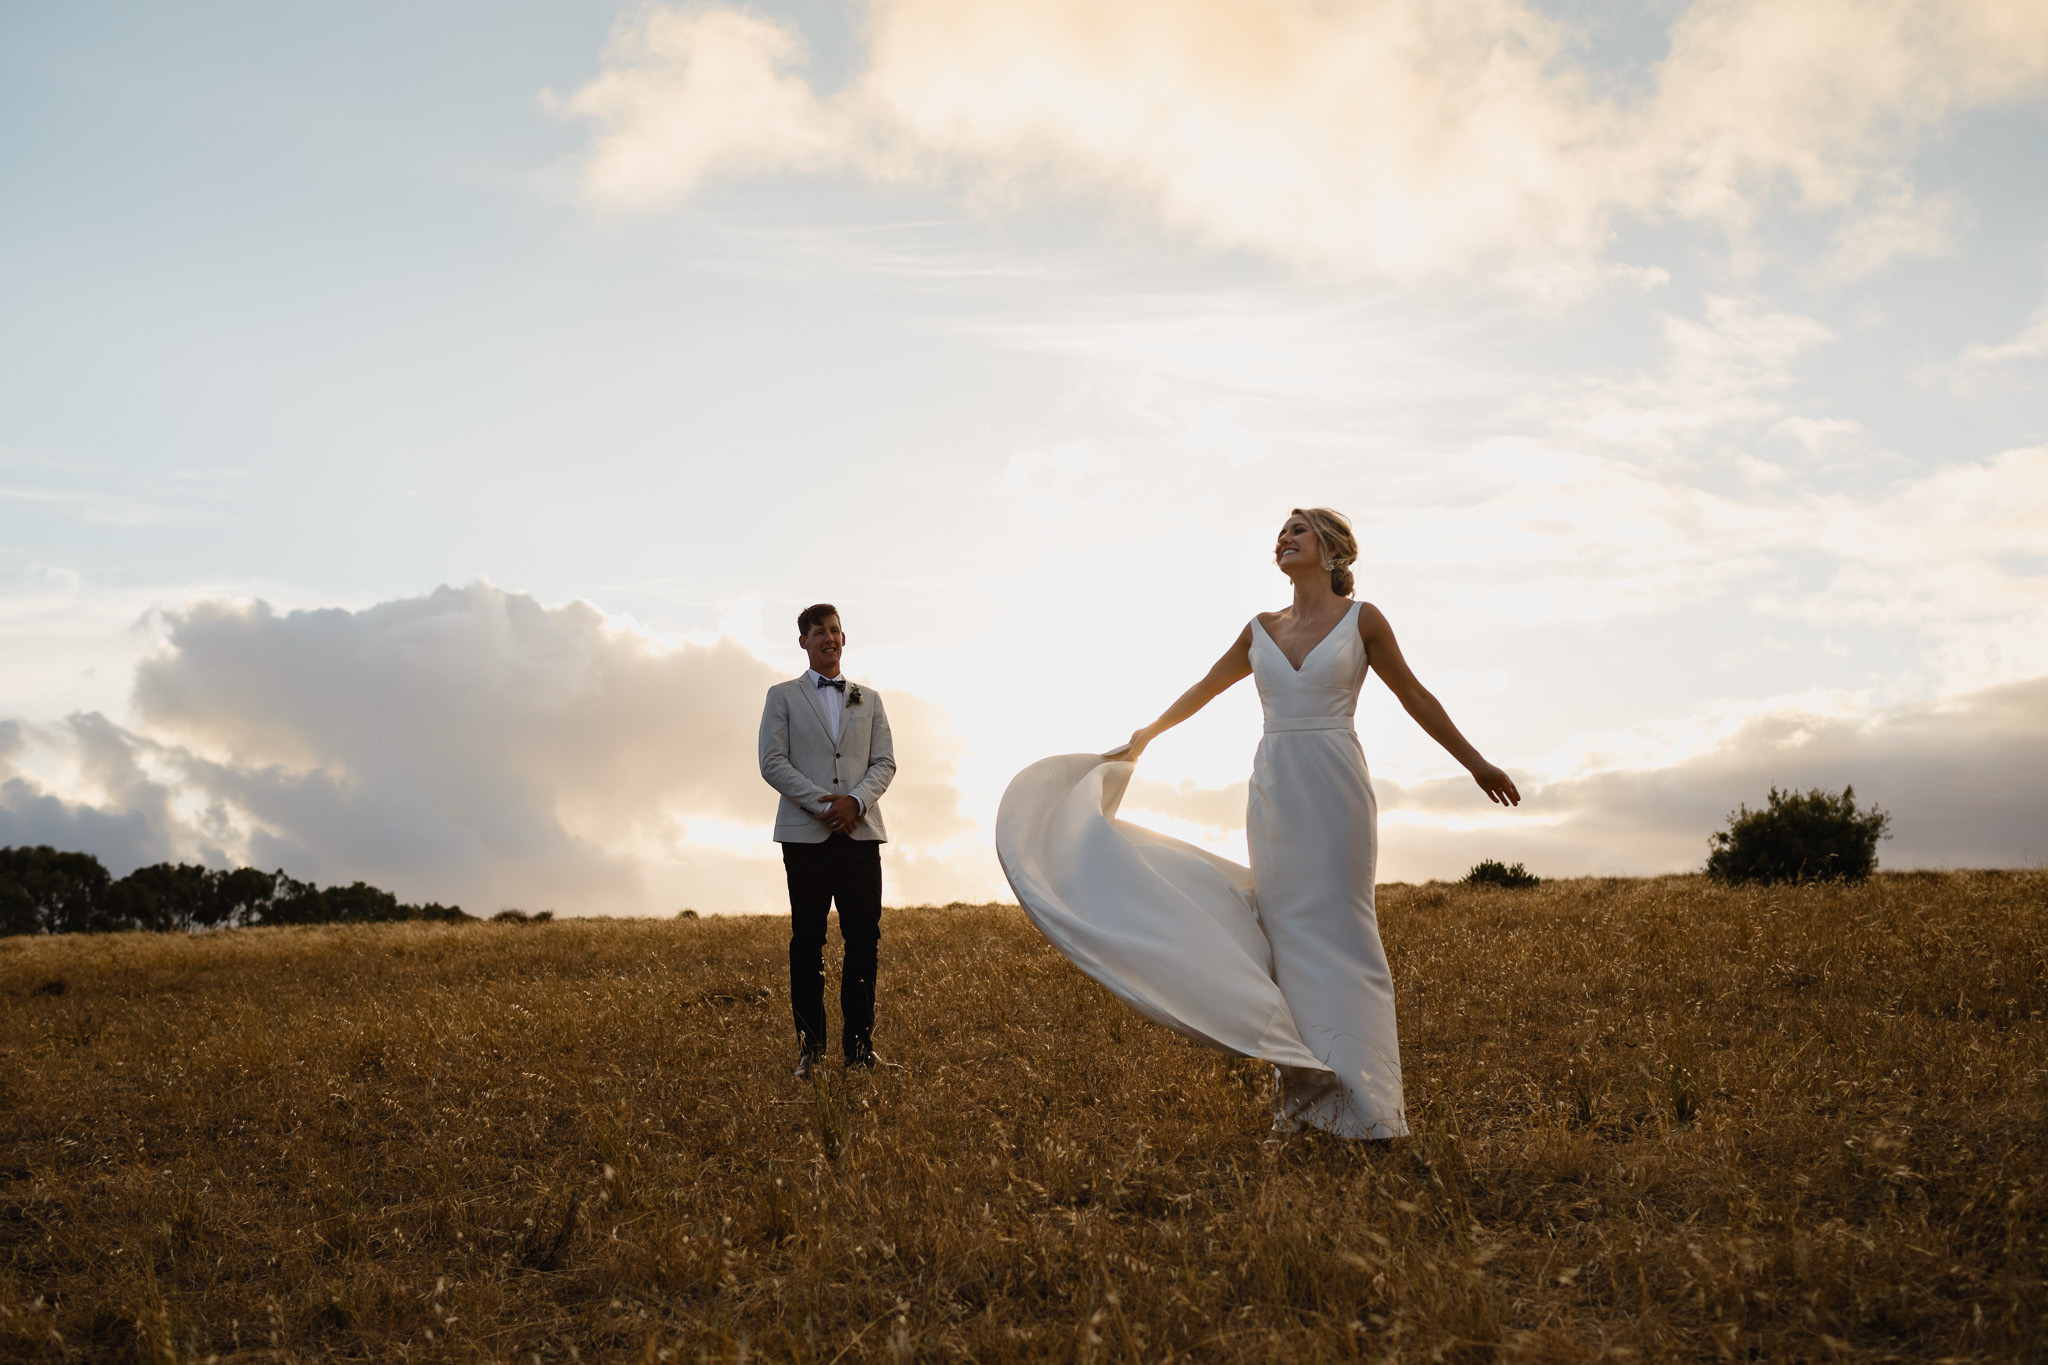 Bride holding dress and spinning around in a field at outdoor wedding in Yallingup